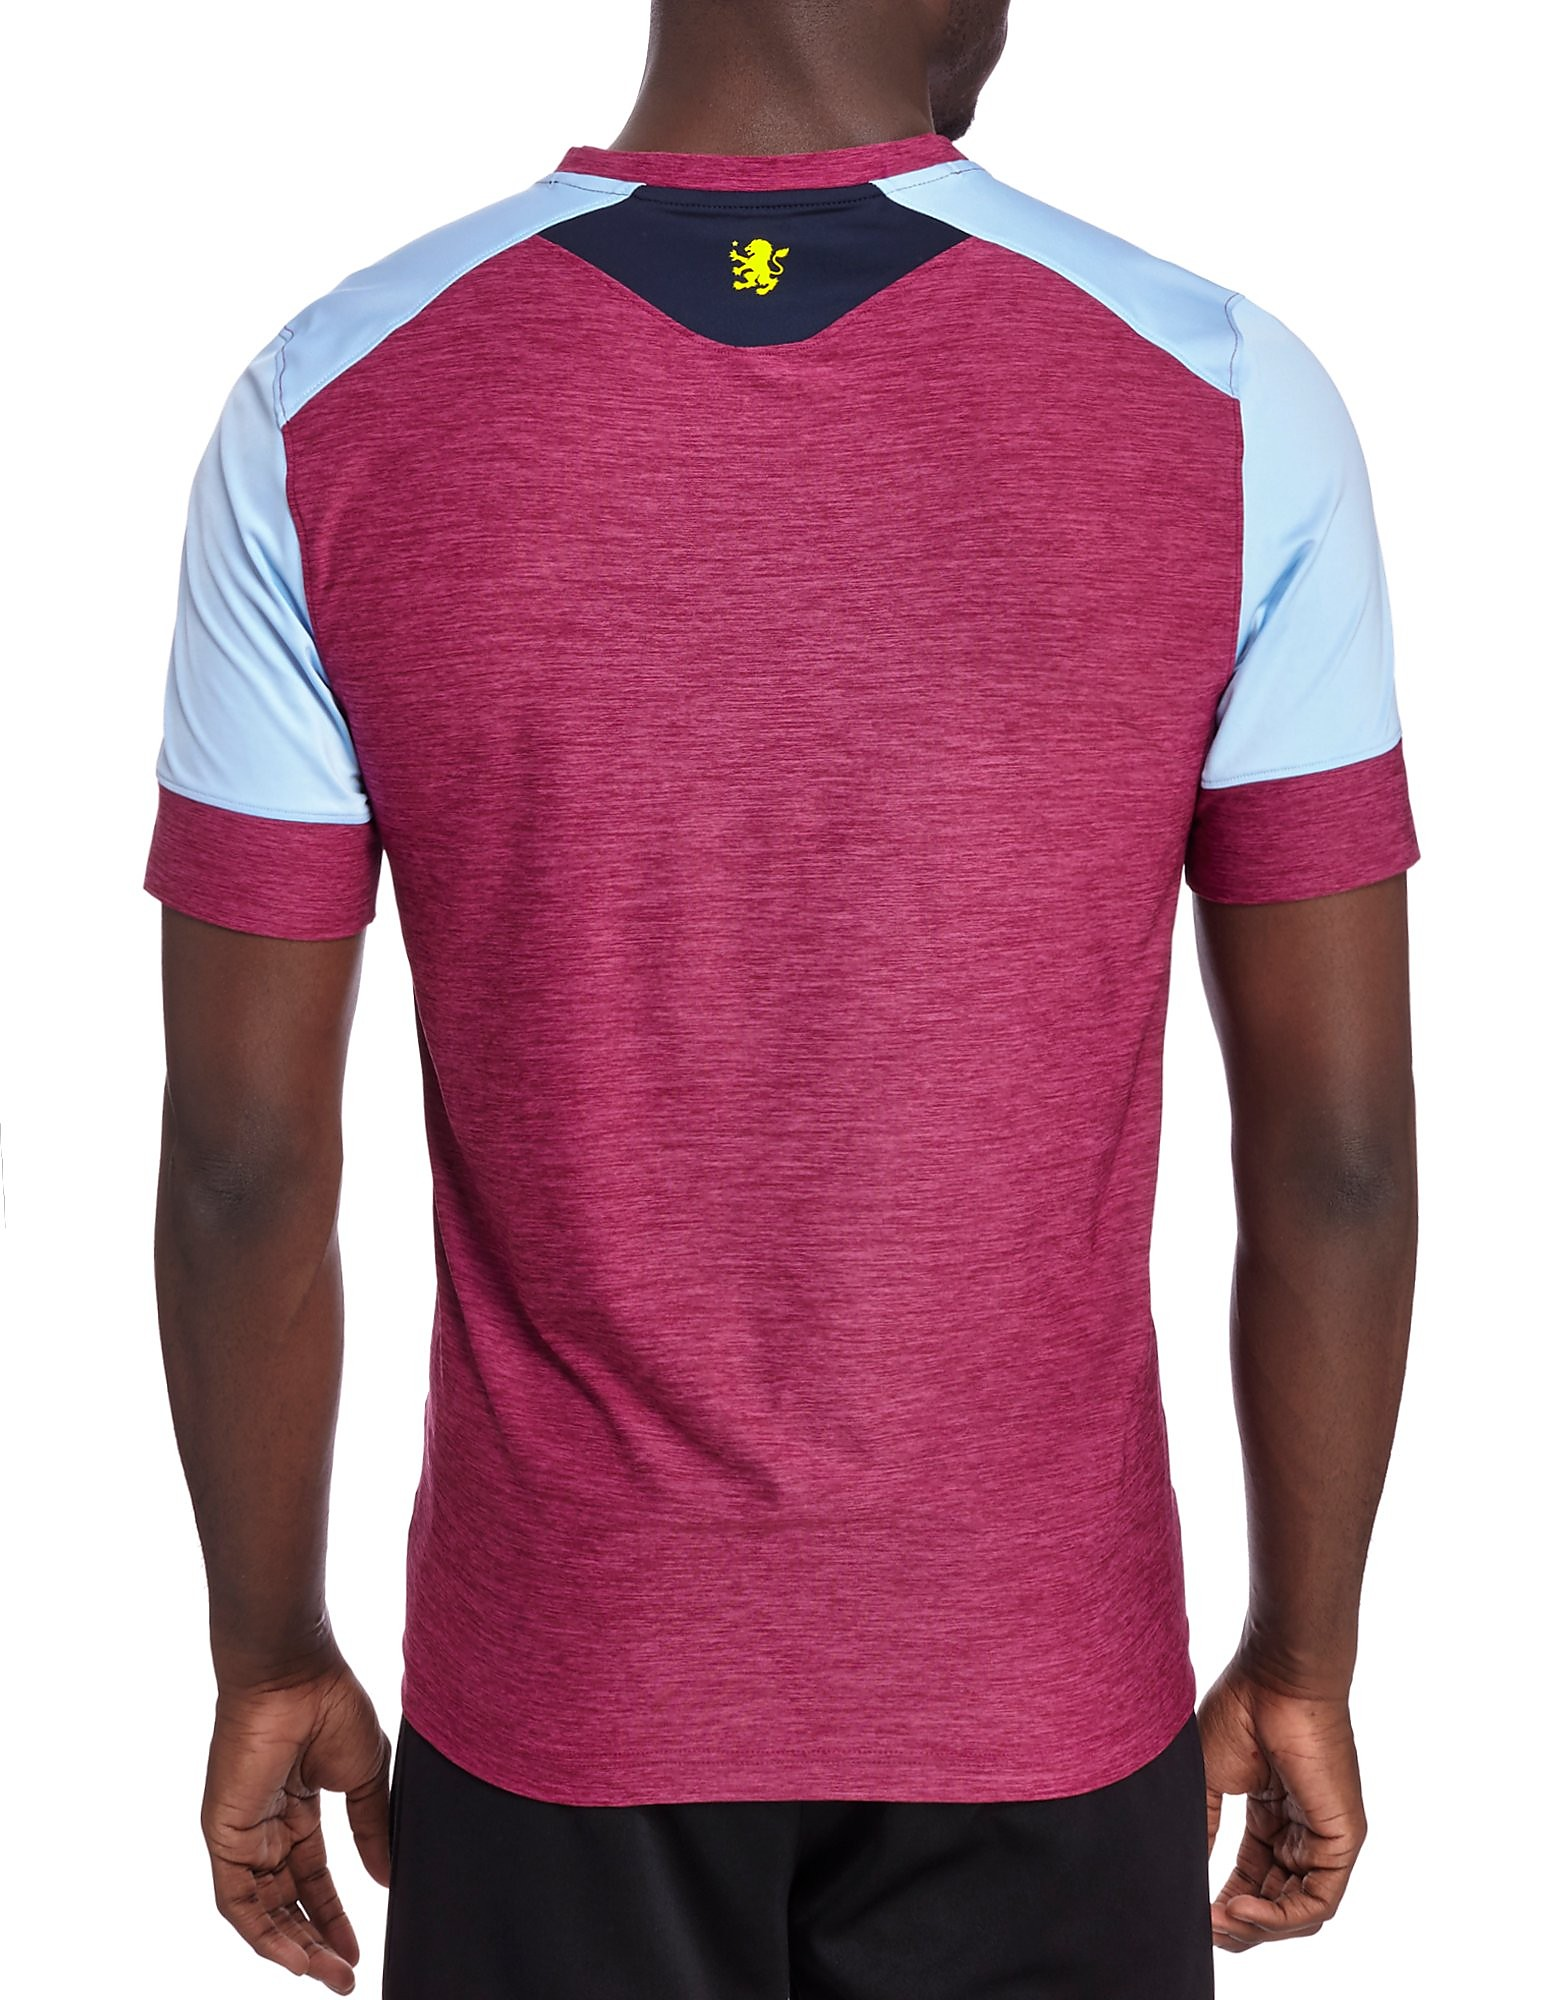 Under Armour Aston Villa 2016/17 Training Shirt